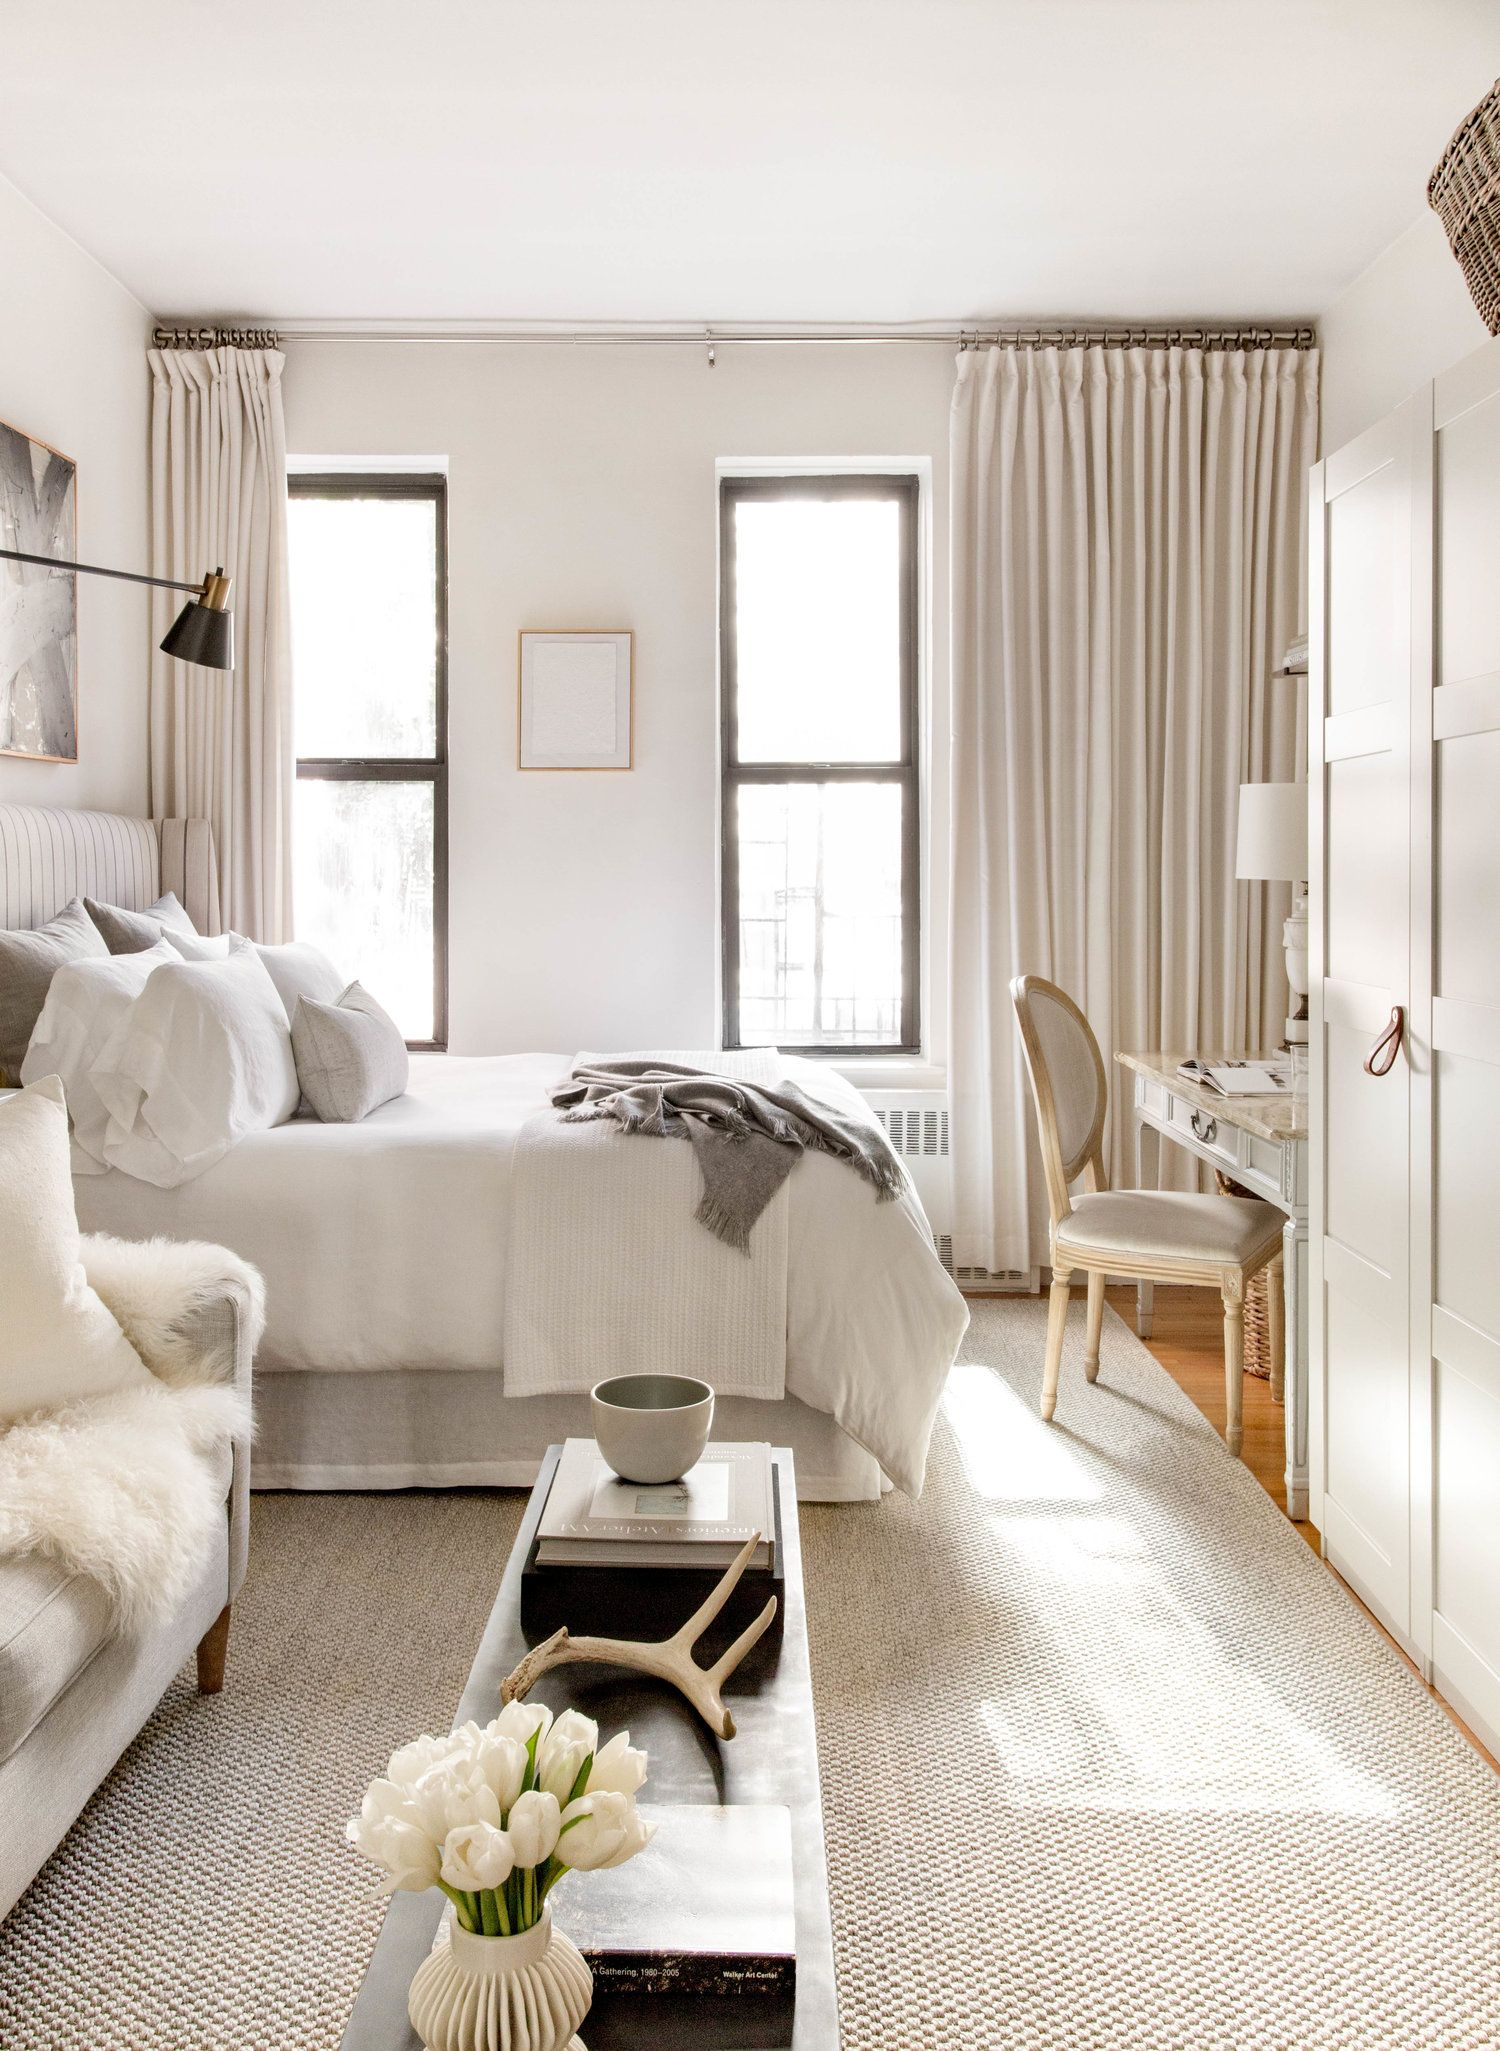 Nyc Studio Apartment Designed By Meagan Camp Featured In Domino